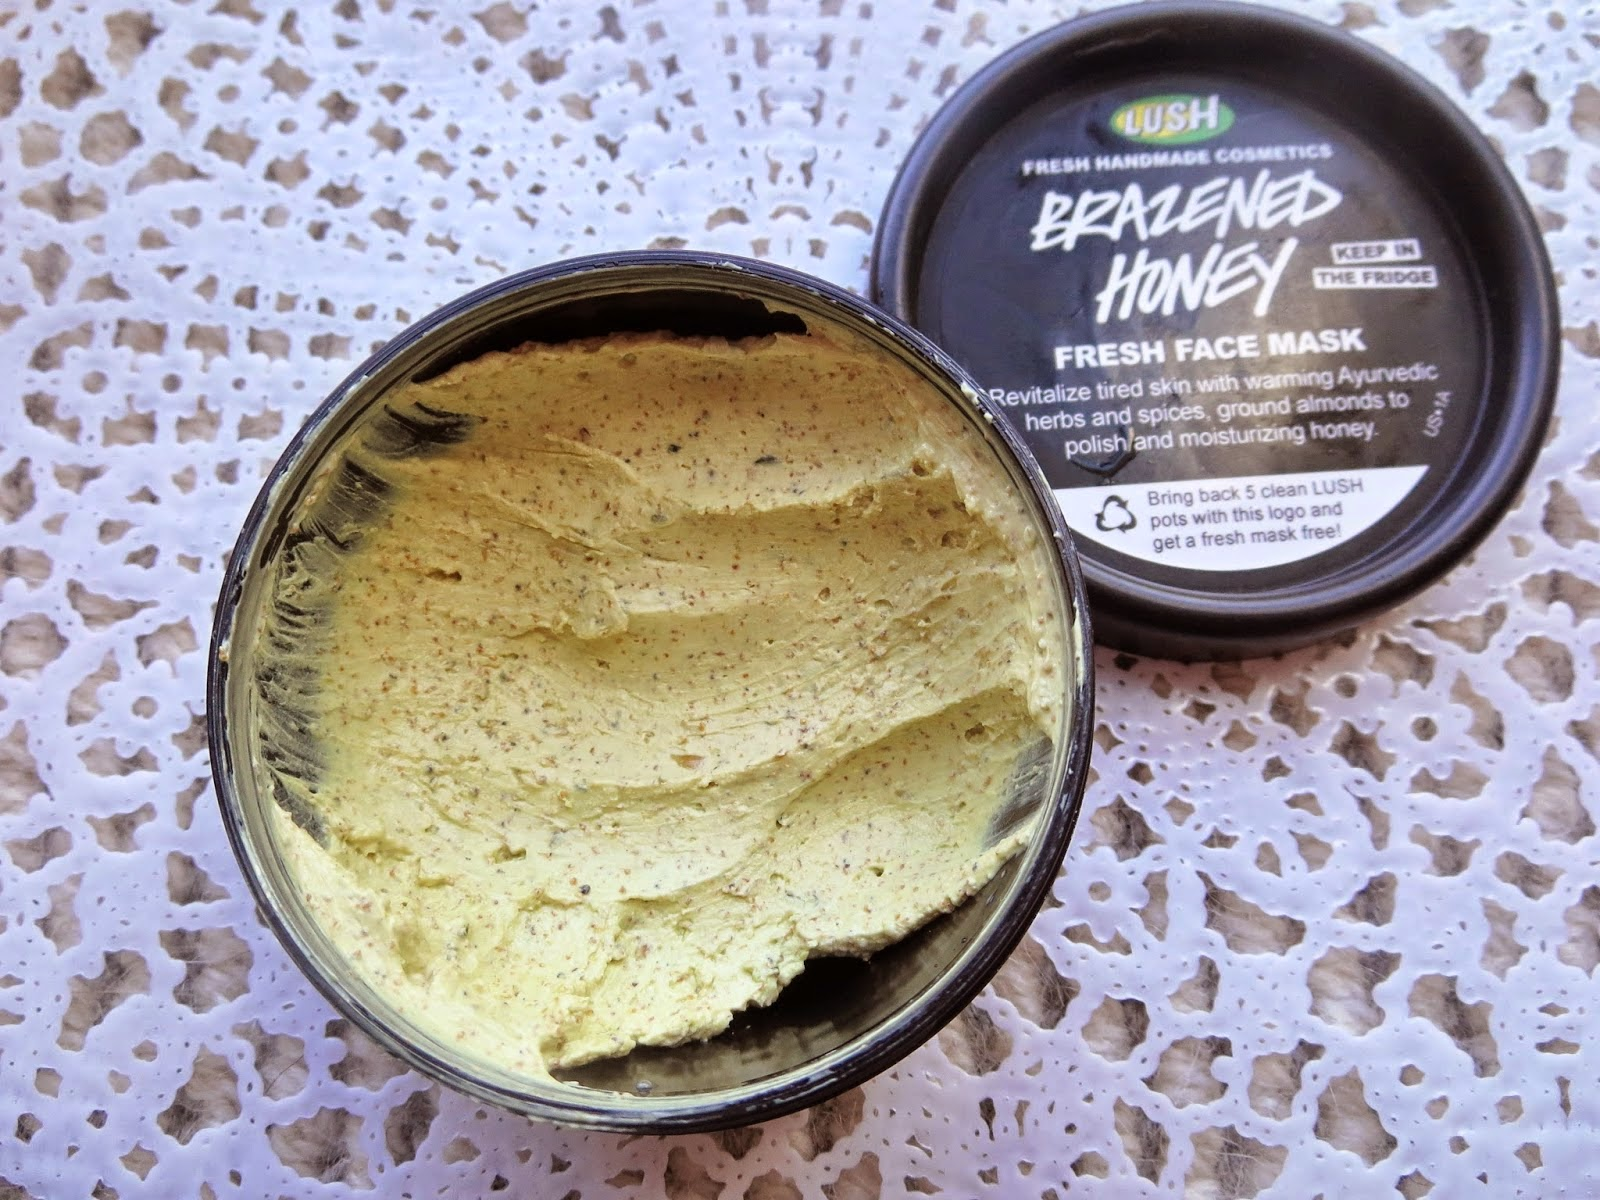 a picture of Lush Brazened Honey Fresh Face Mask